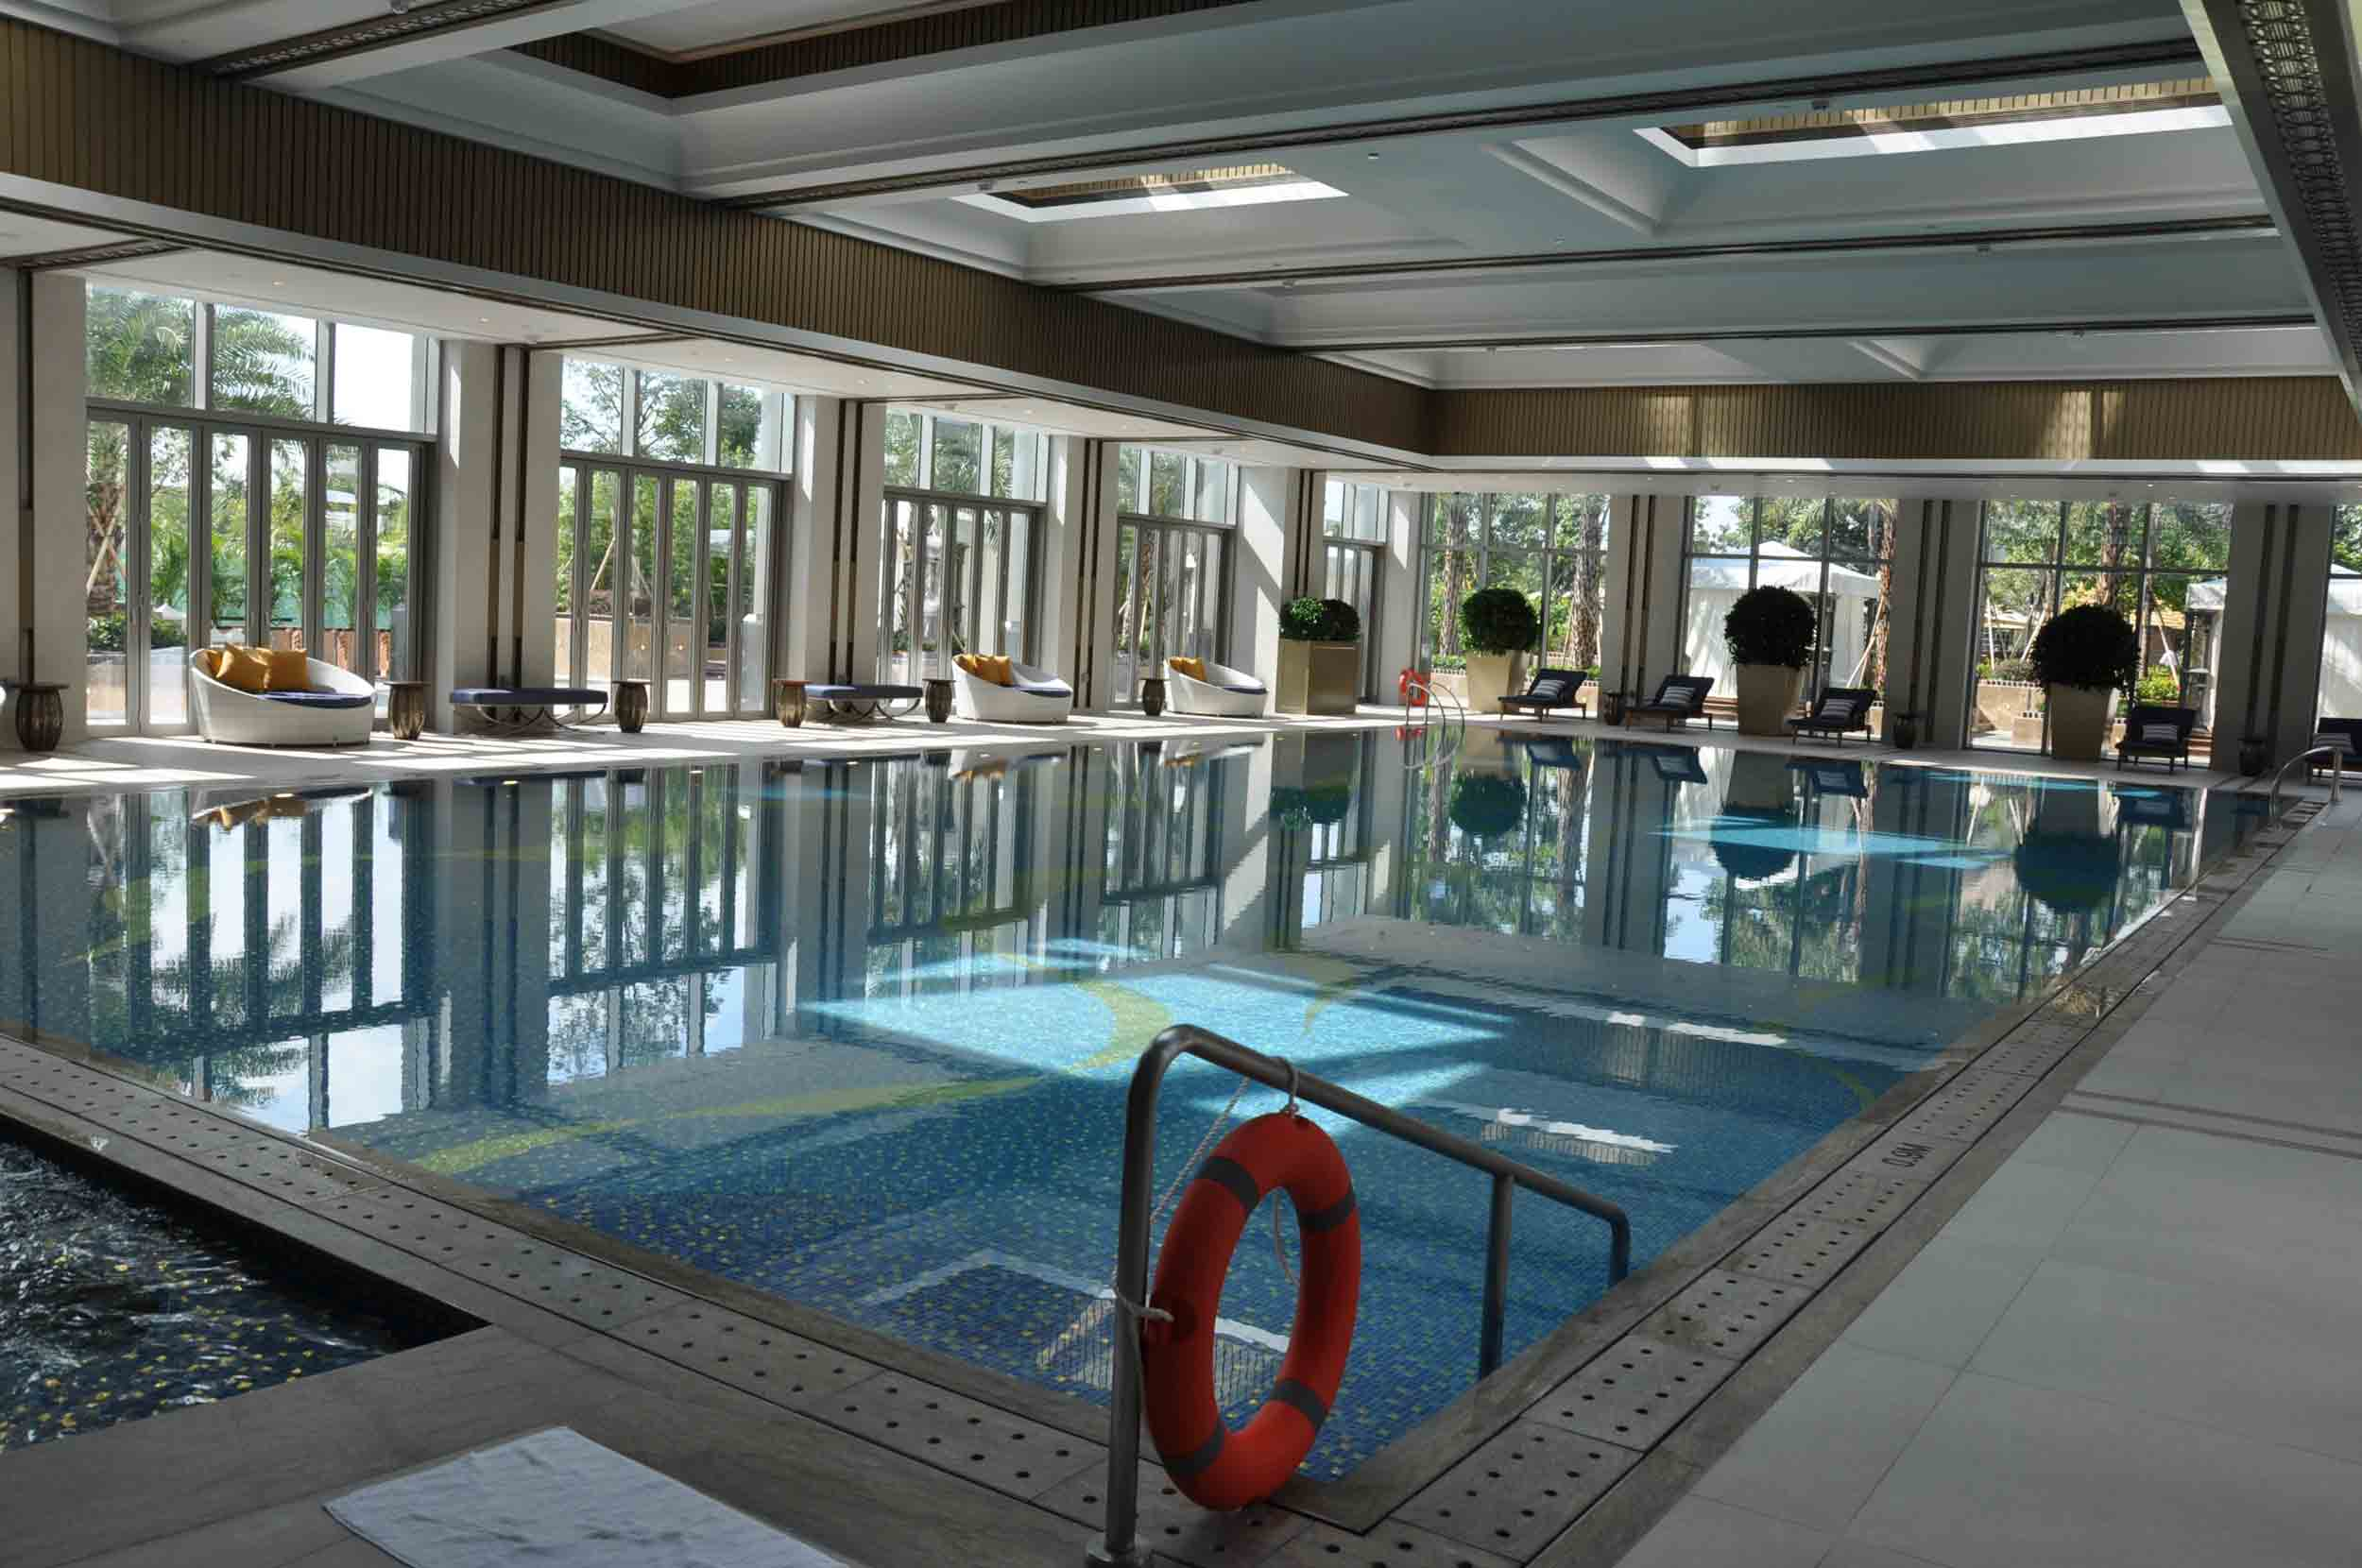 Studio City Macau indoor pool